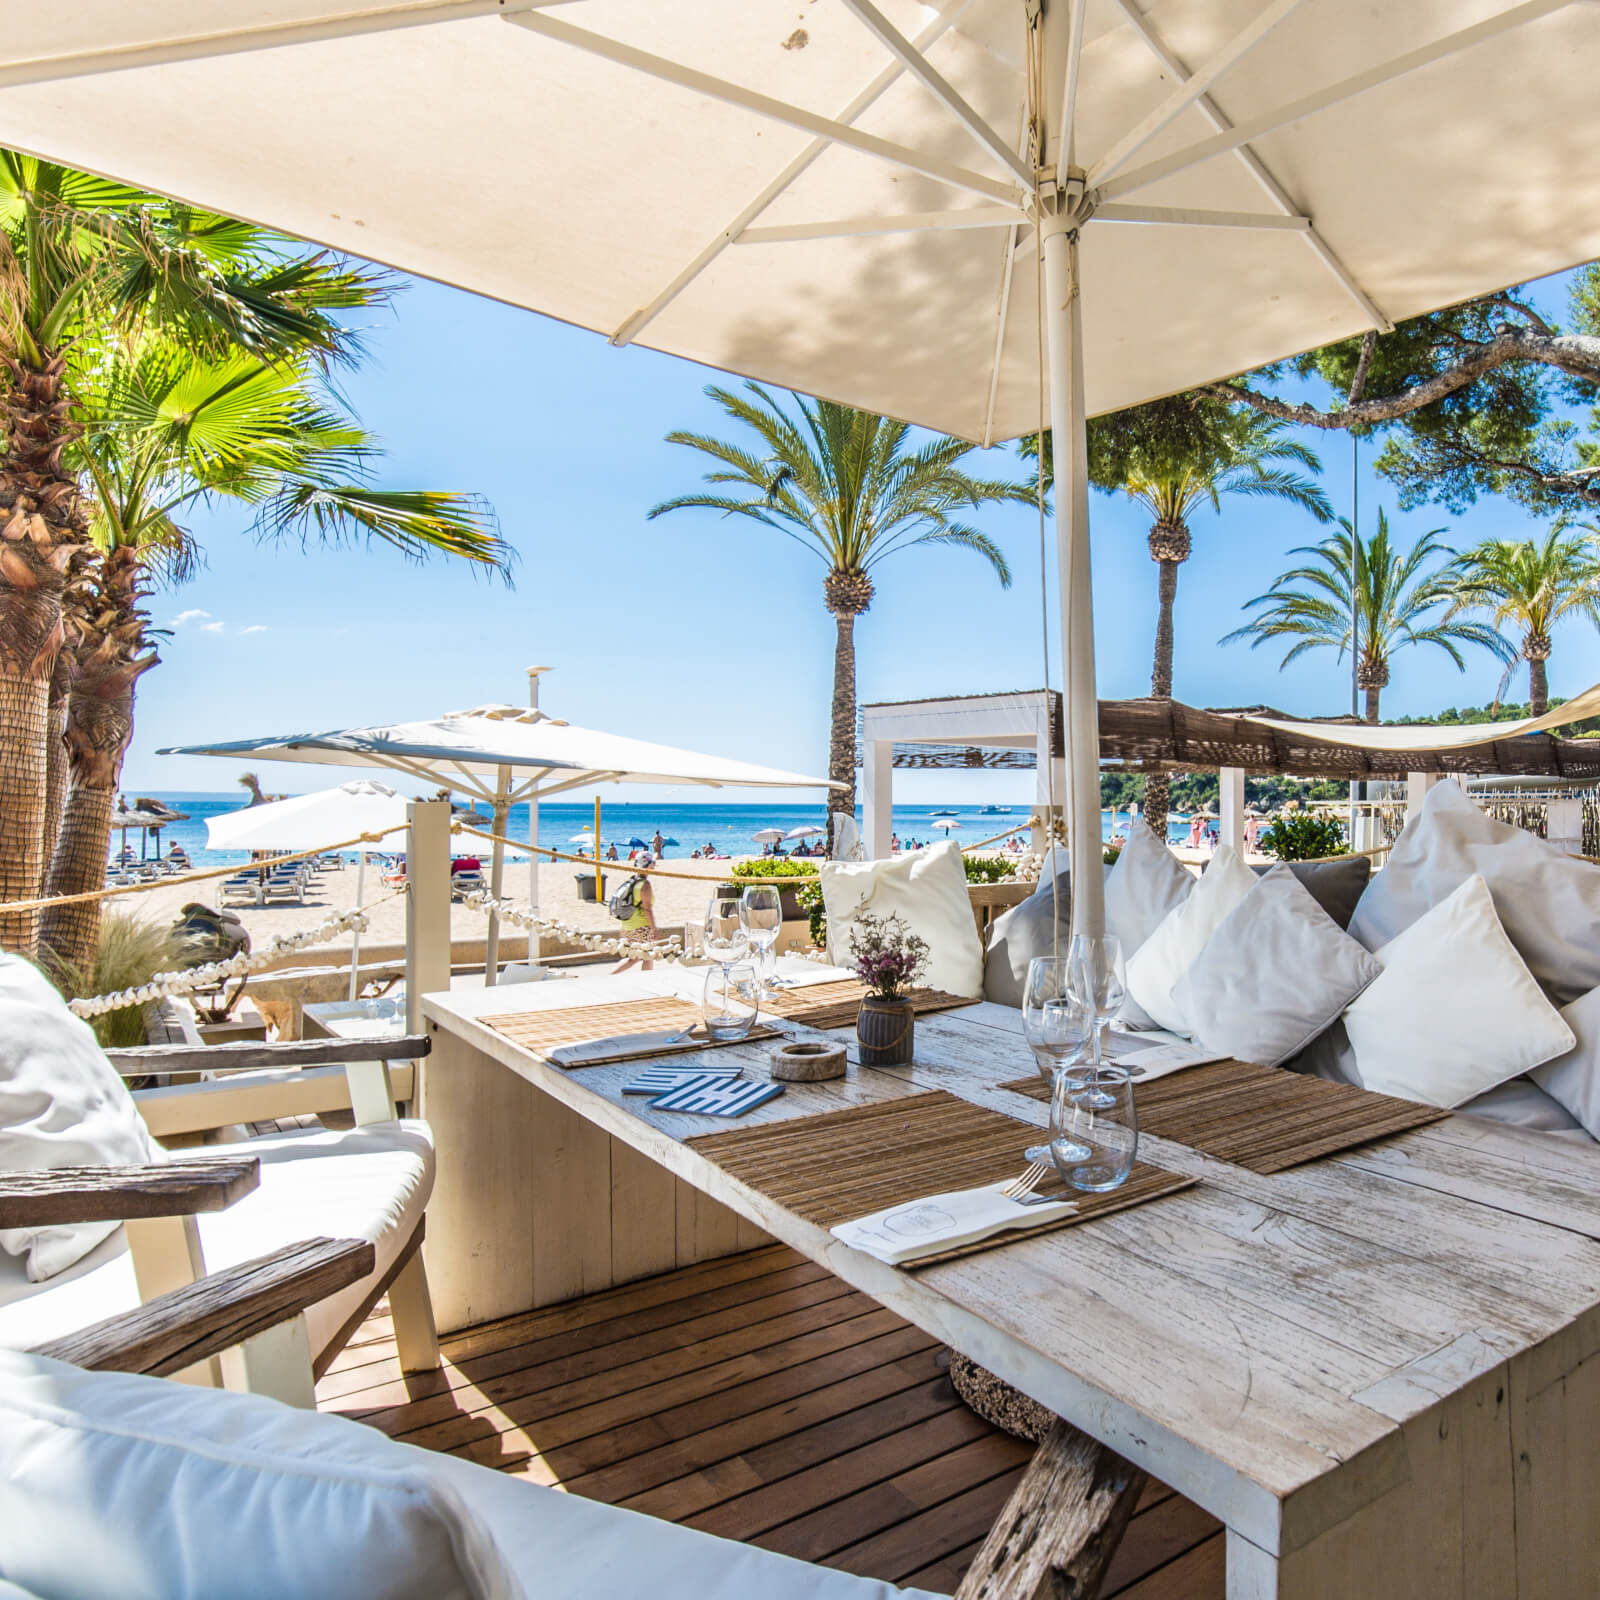 Zhero Boathouse Magaluf Mallorca Chillout-Restaurant Beachclub